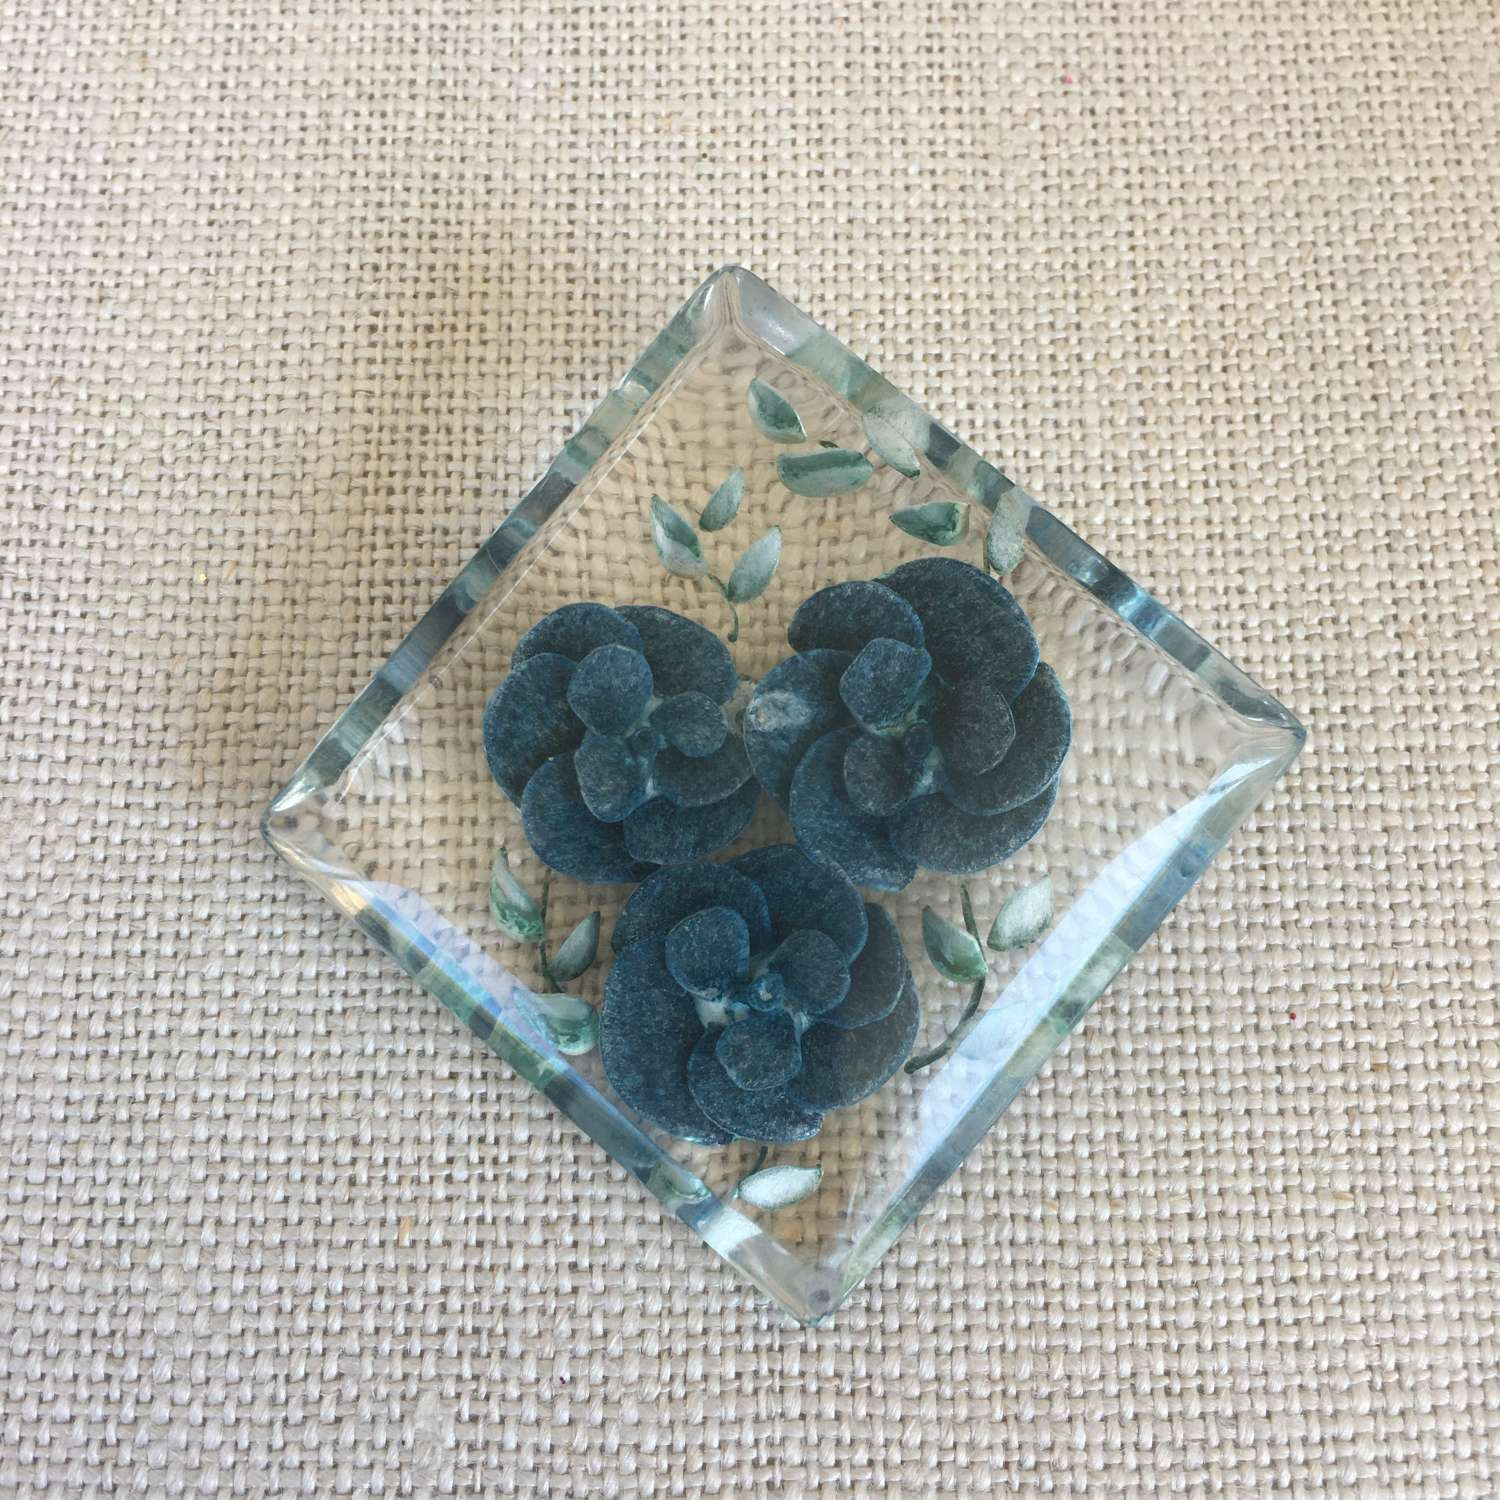 Vintage lucite brooch with blue flowers